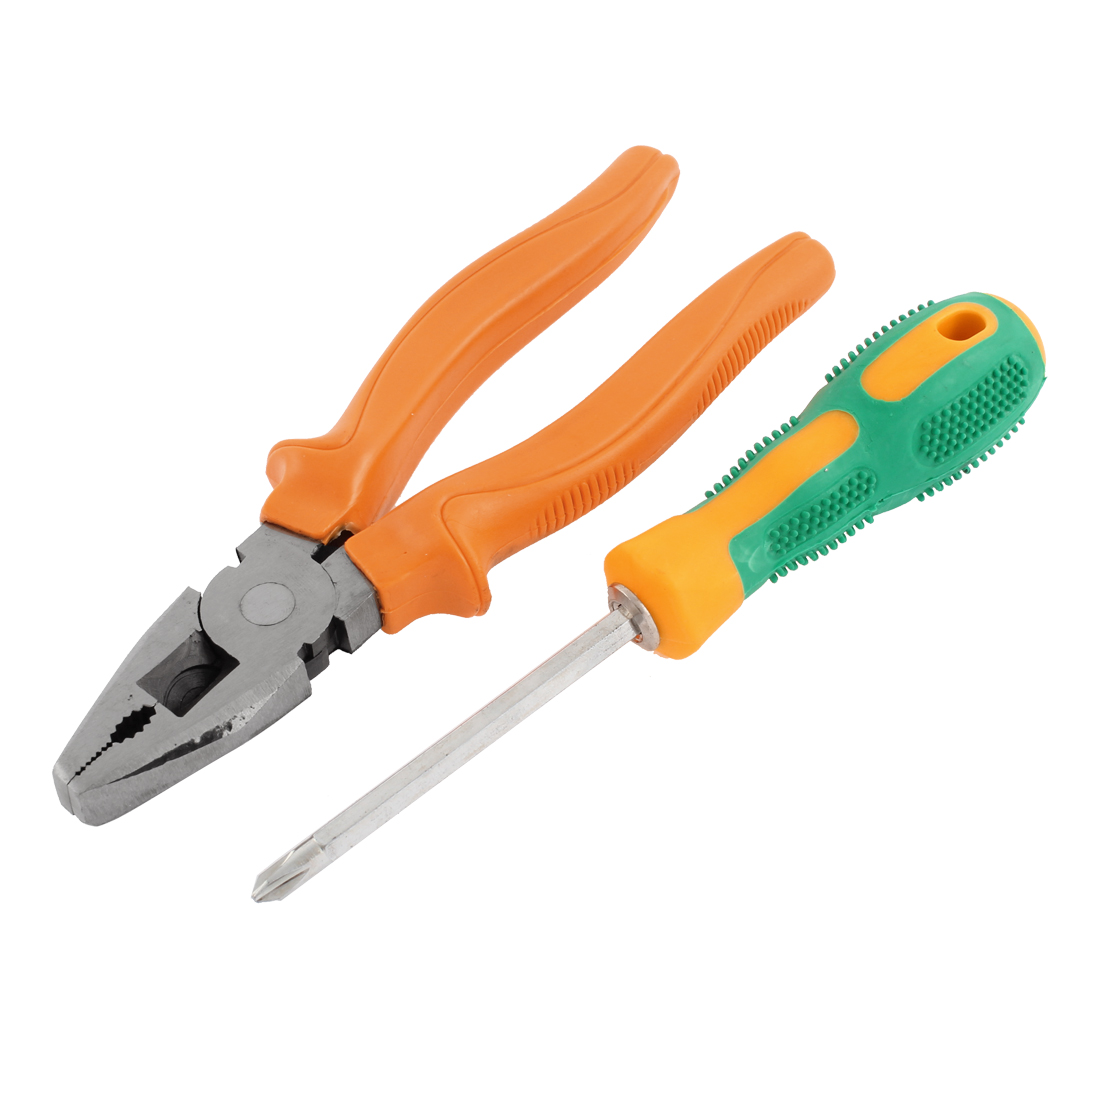 Home Office Hand Tools Combination Pliers Cross Screwdriver Set 2 In 1